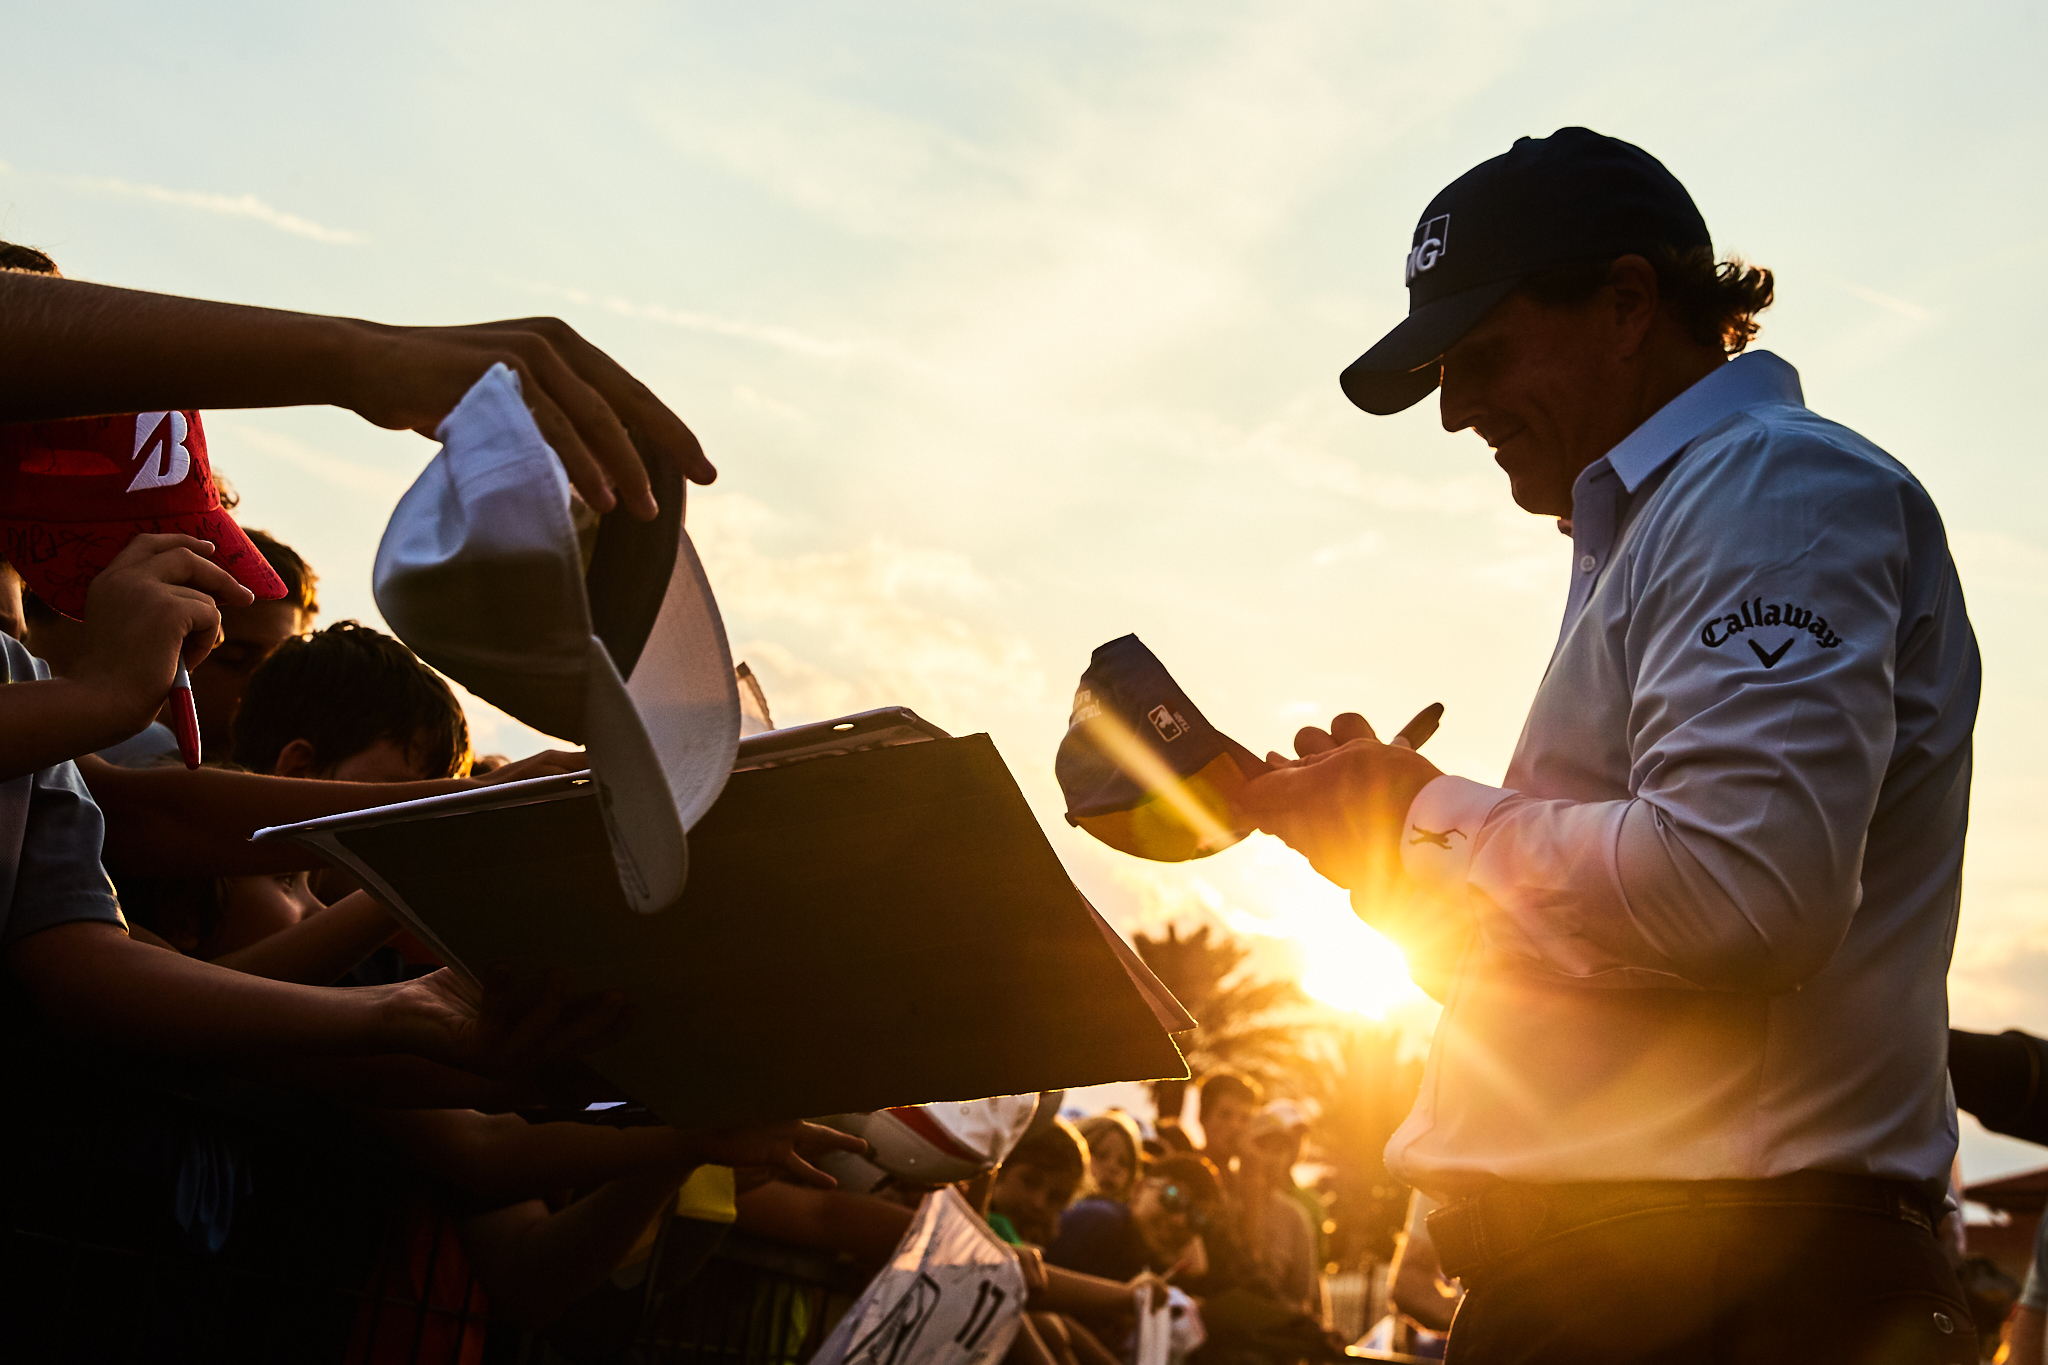 Phil Mickelson at the autograph line . Canon 1DX, Canon EF 24-70mm f2.8L